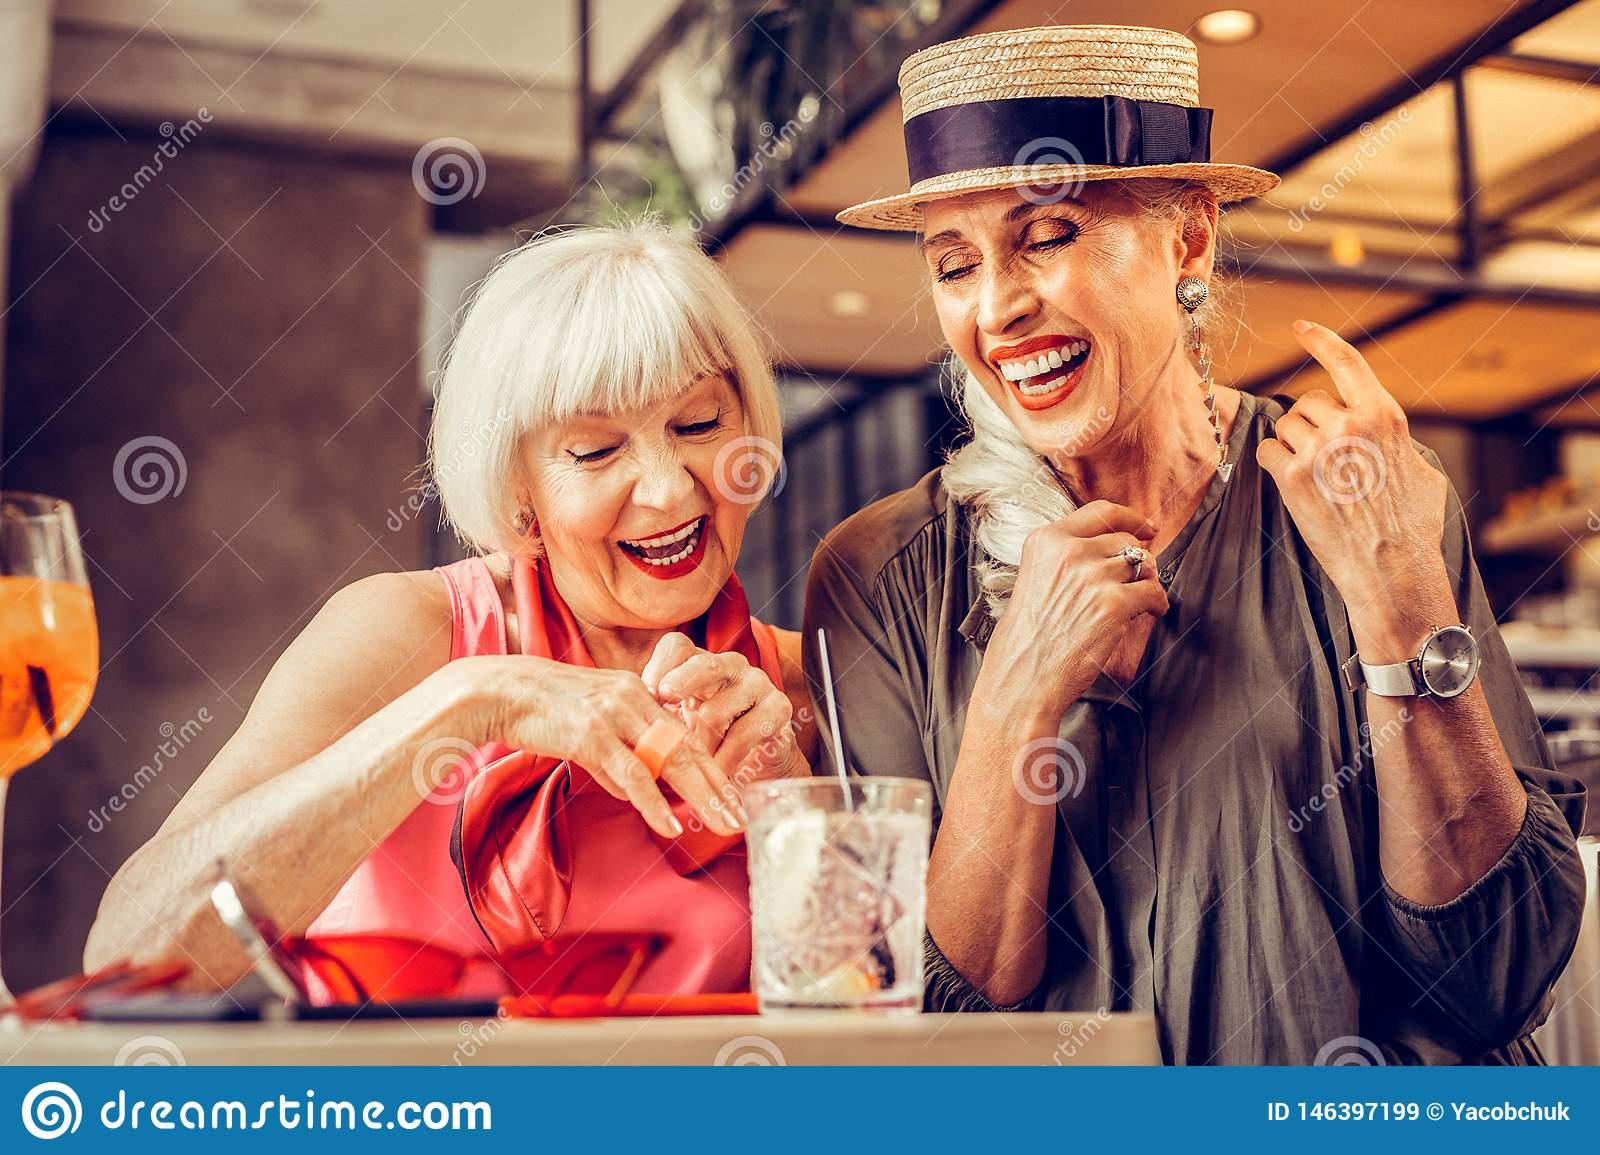 Amused good-looking old ladies being excited while drinking together